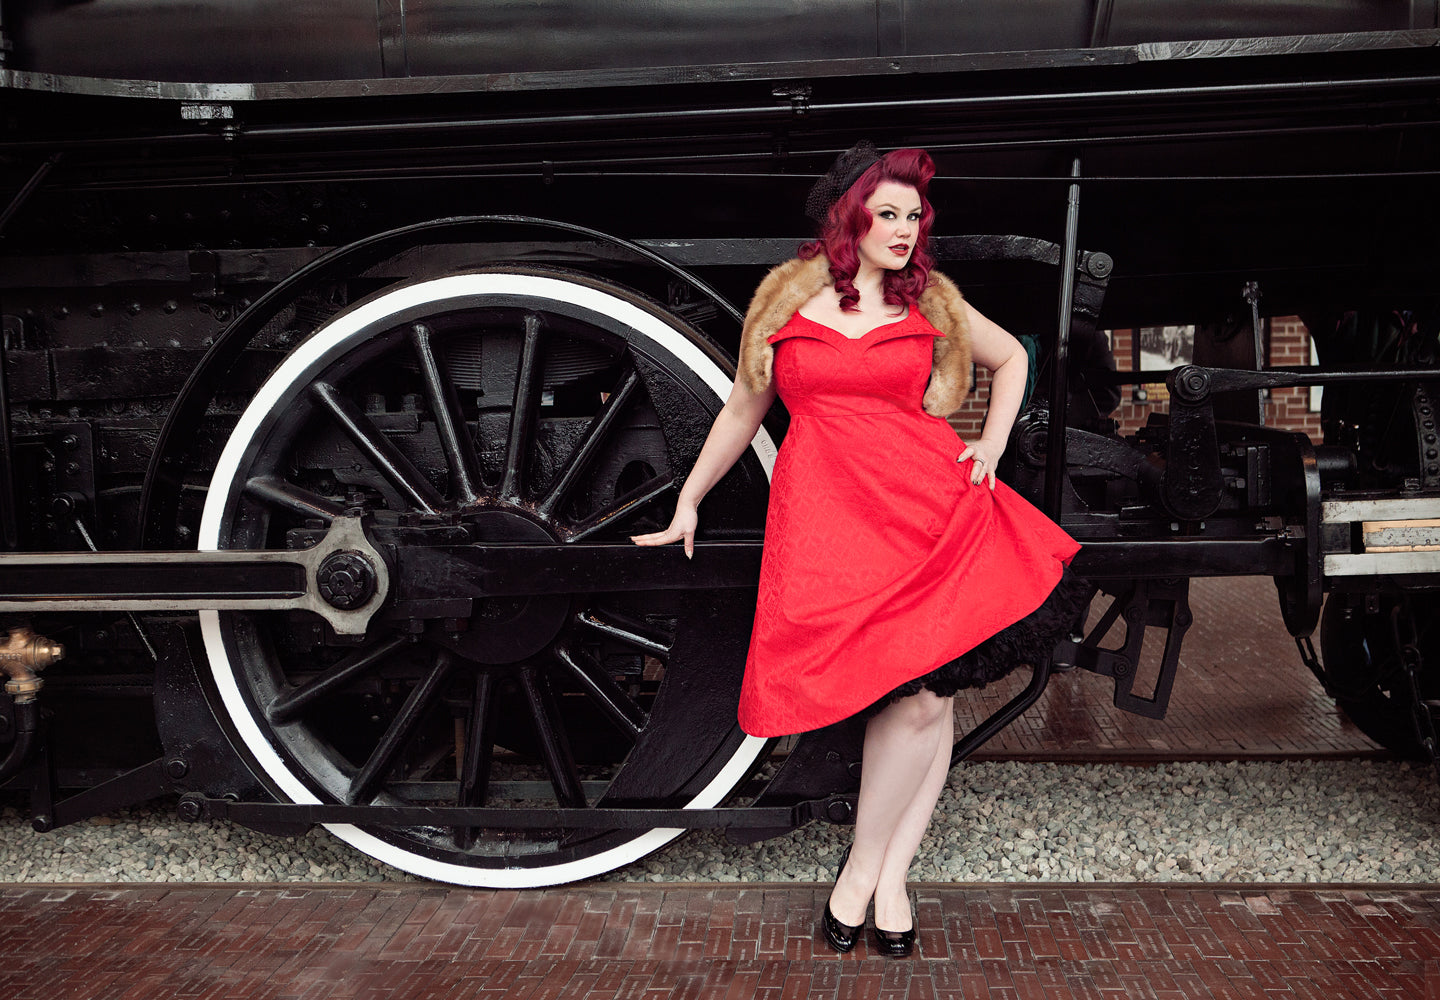 Ruby Roxx in Elly dress at the Roundhouse Locomotive